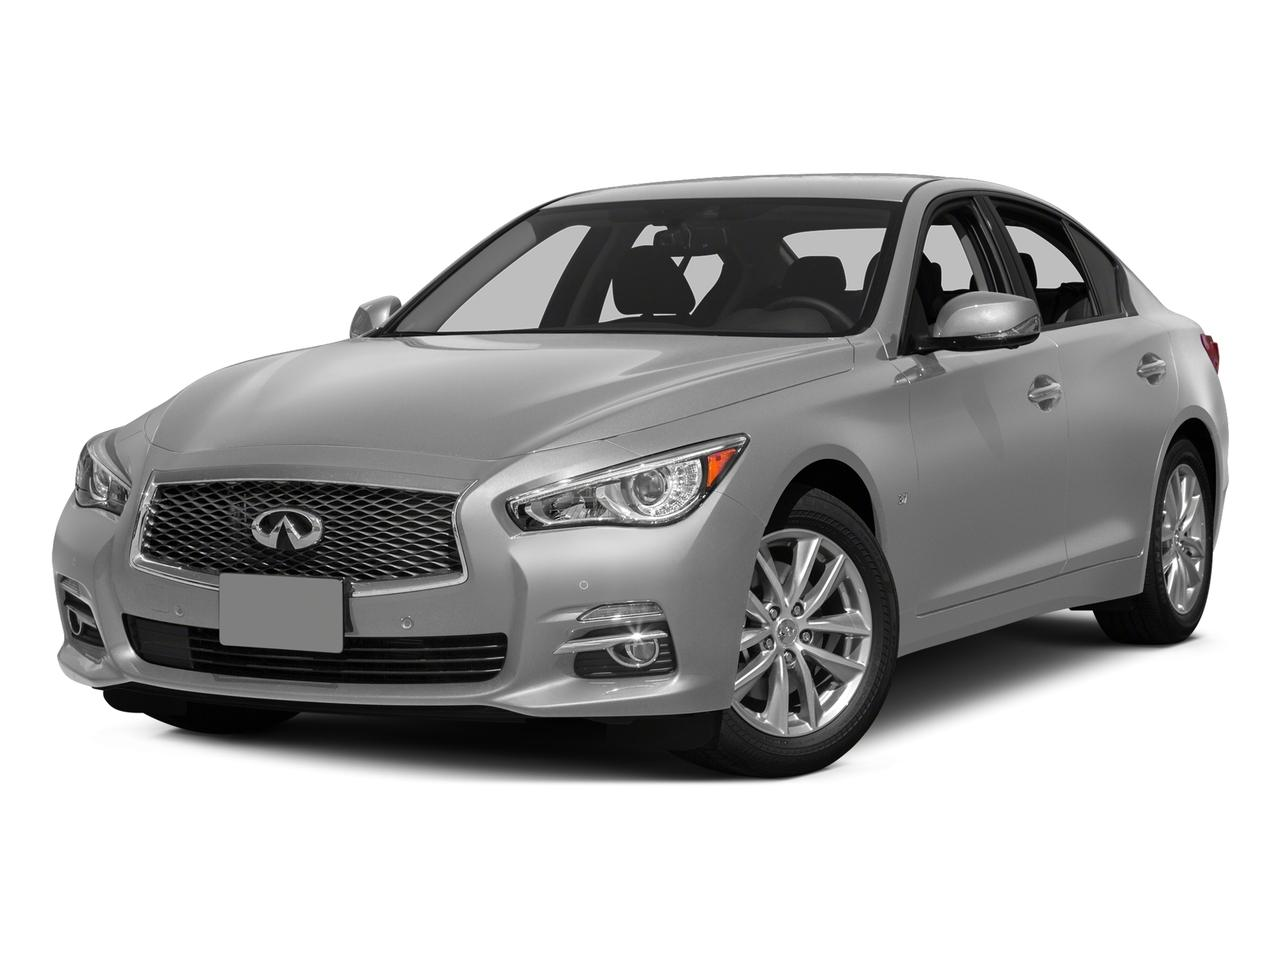 2015 INFINITI Q50 Vehicle Photo in Lake Bluff, IL 60044